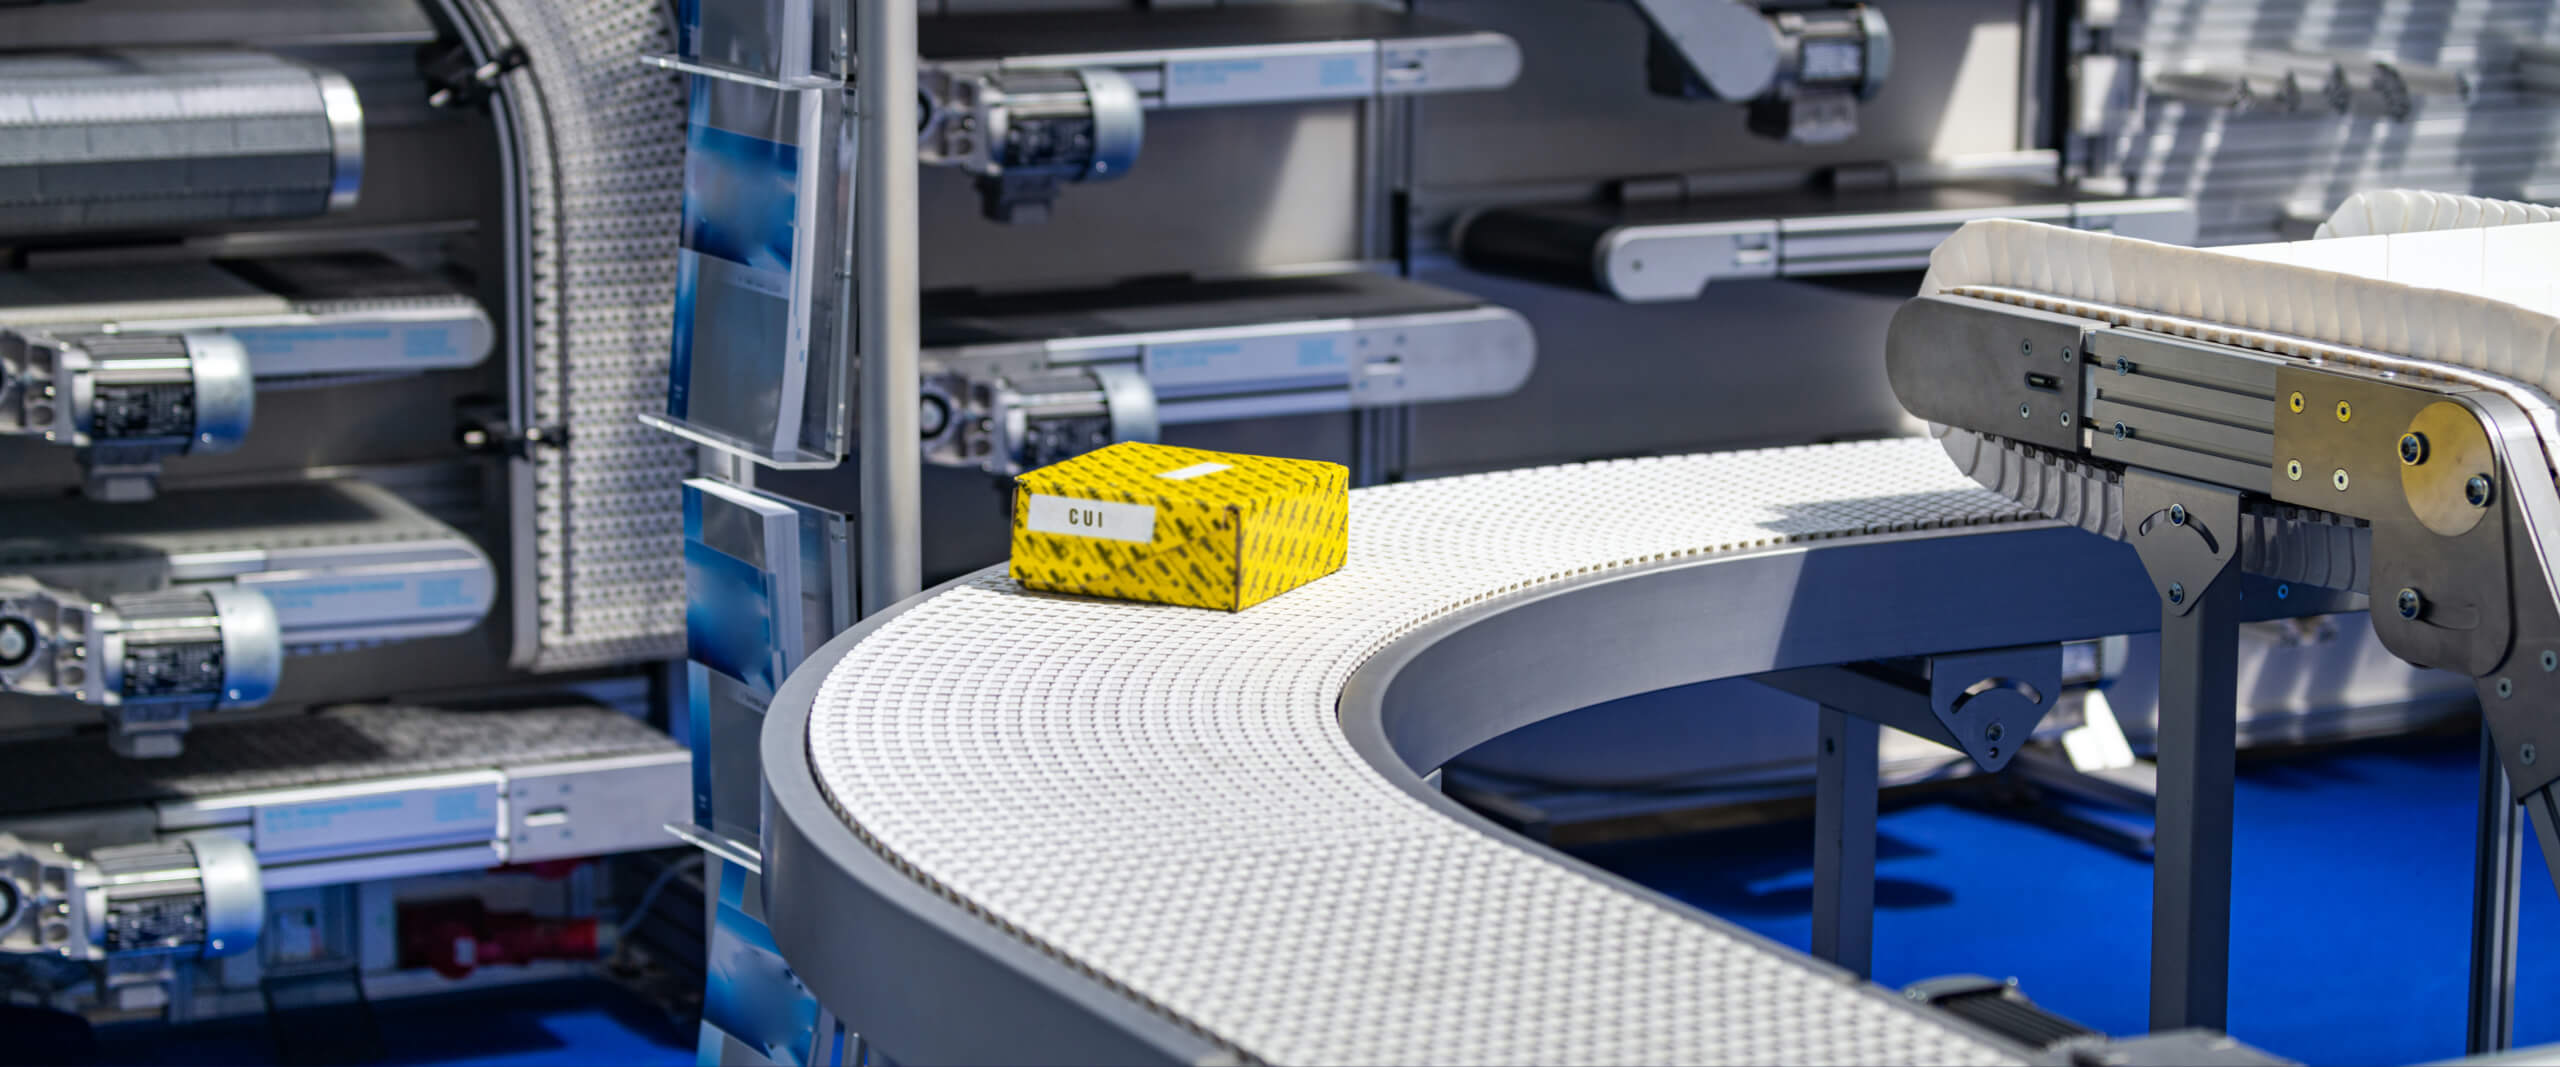 Yellow box on conveyer belt in a factory setting